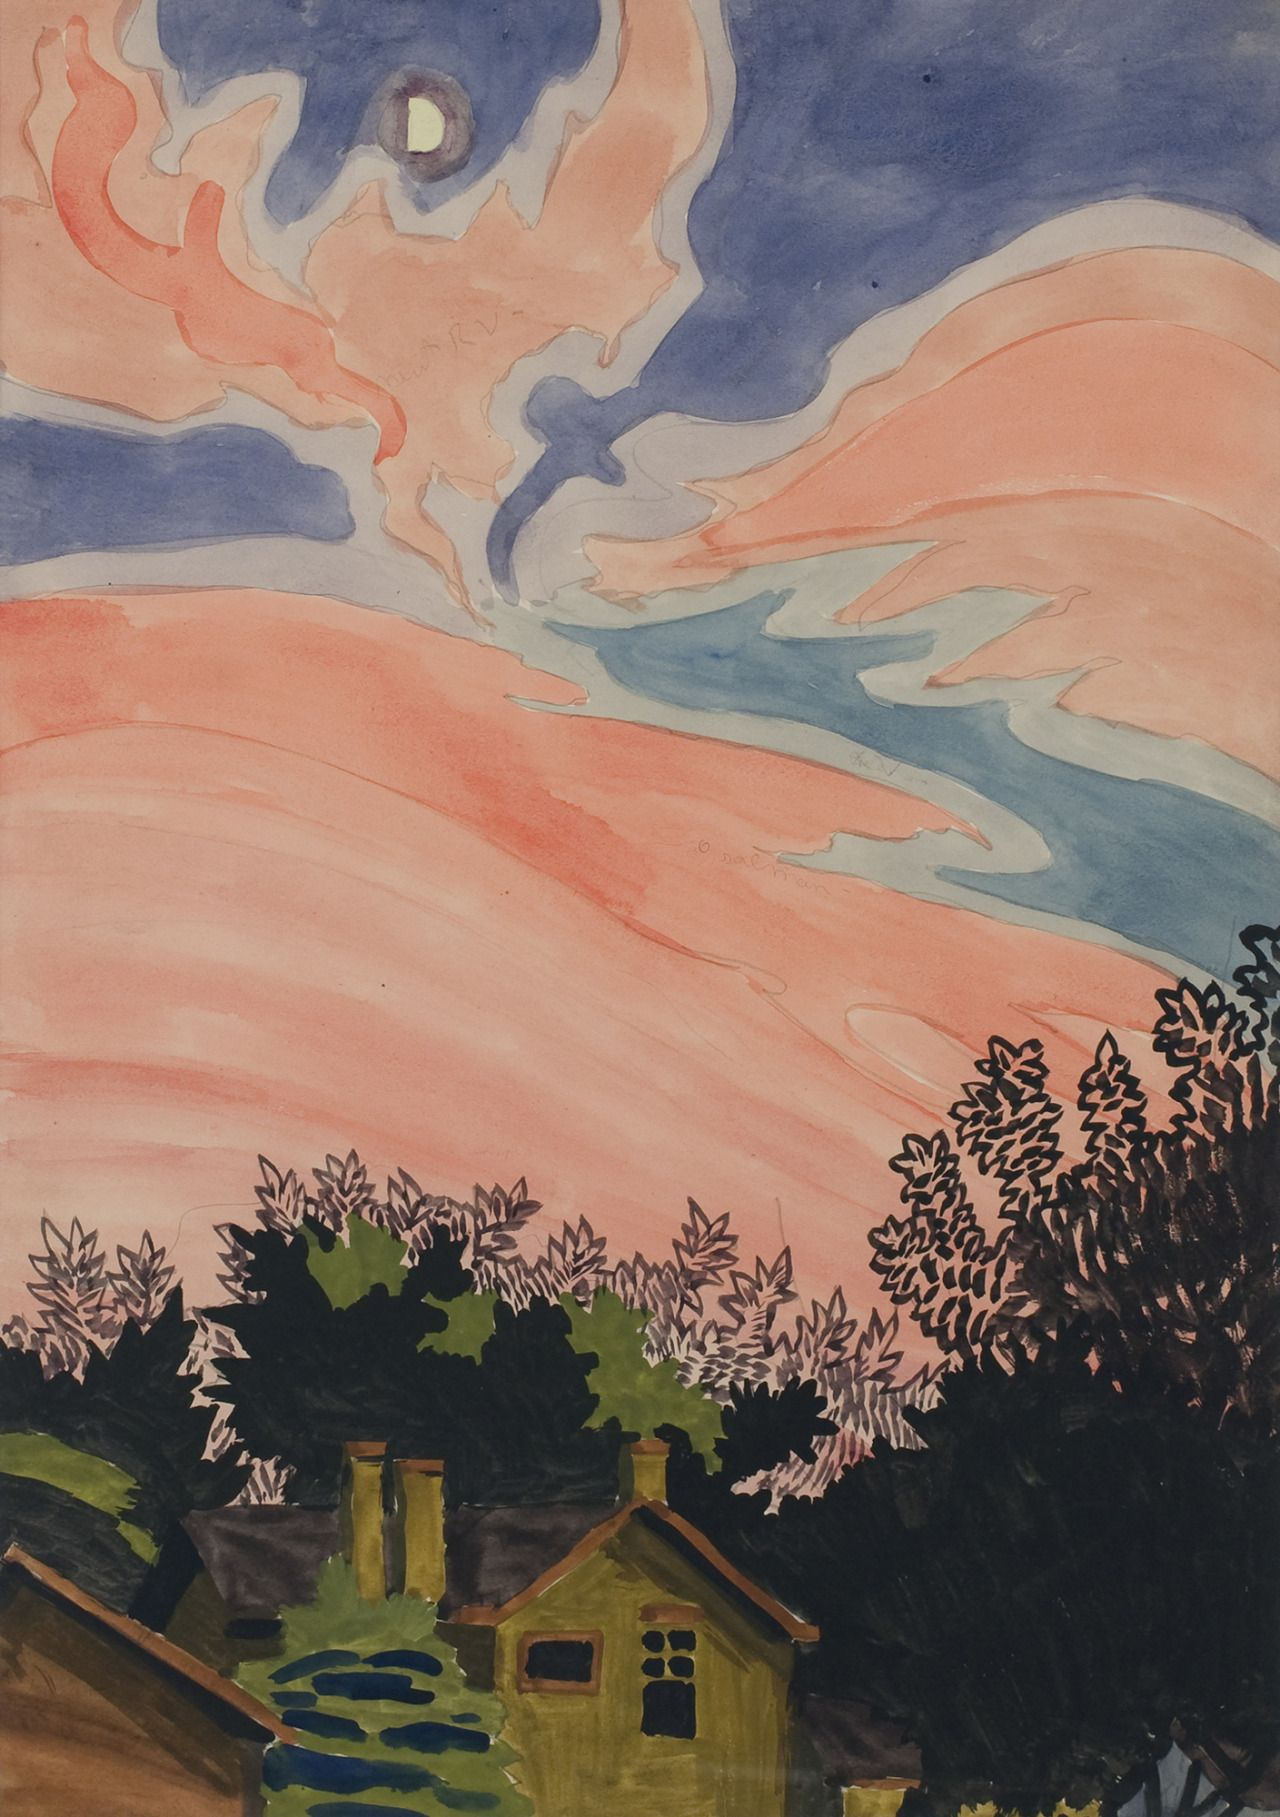 Charles Ephraim Burchfield, Afterglow, 1916